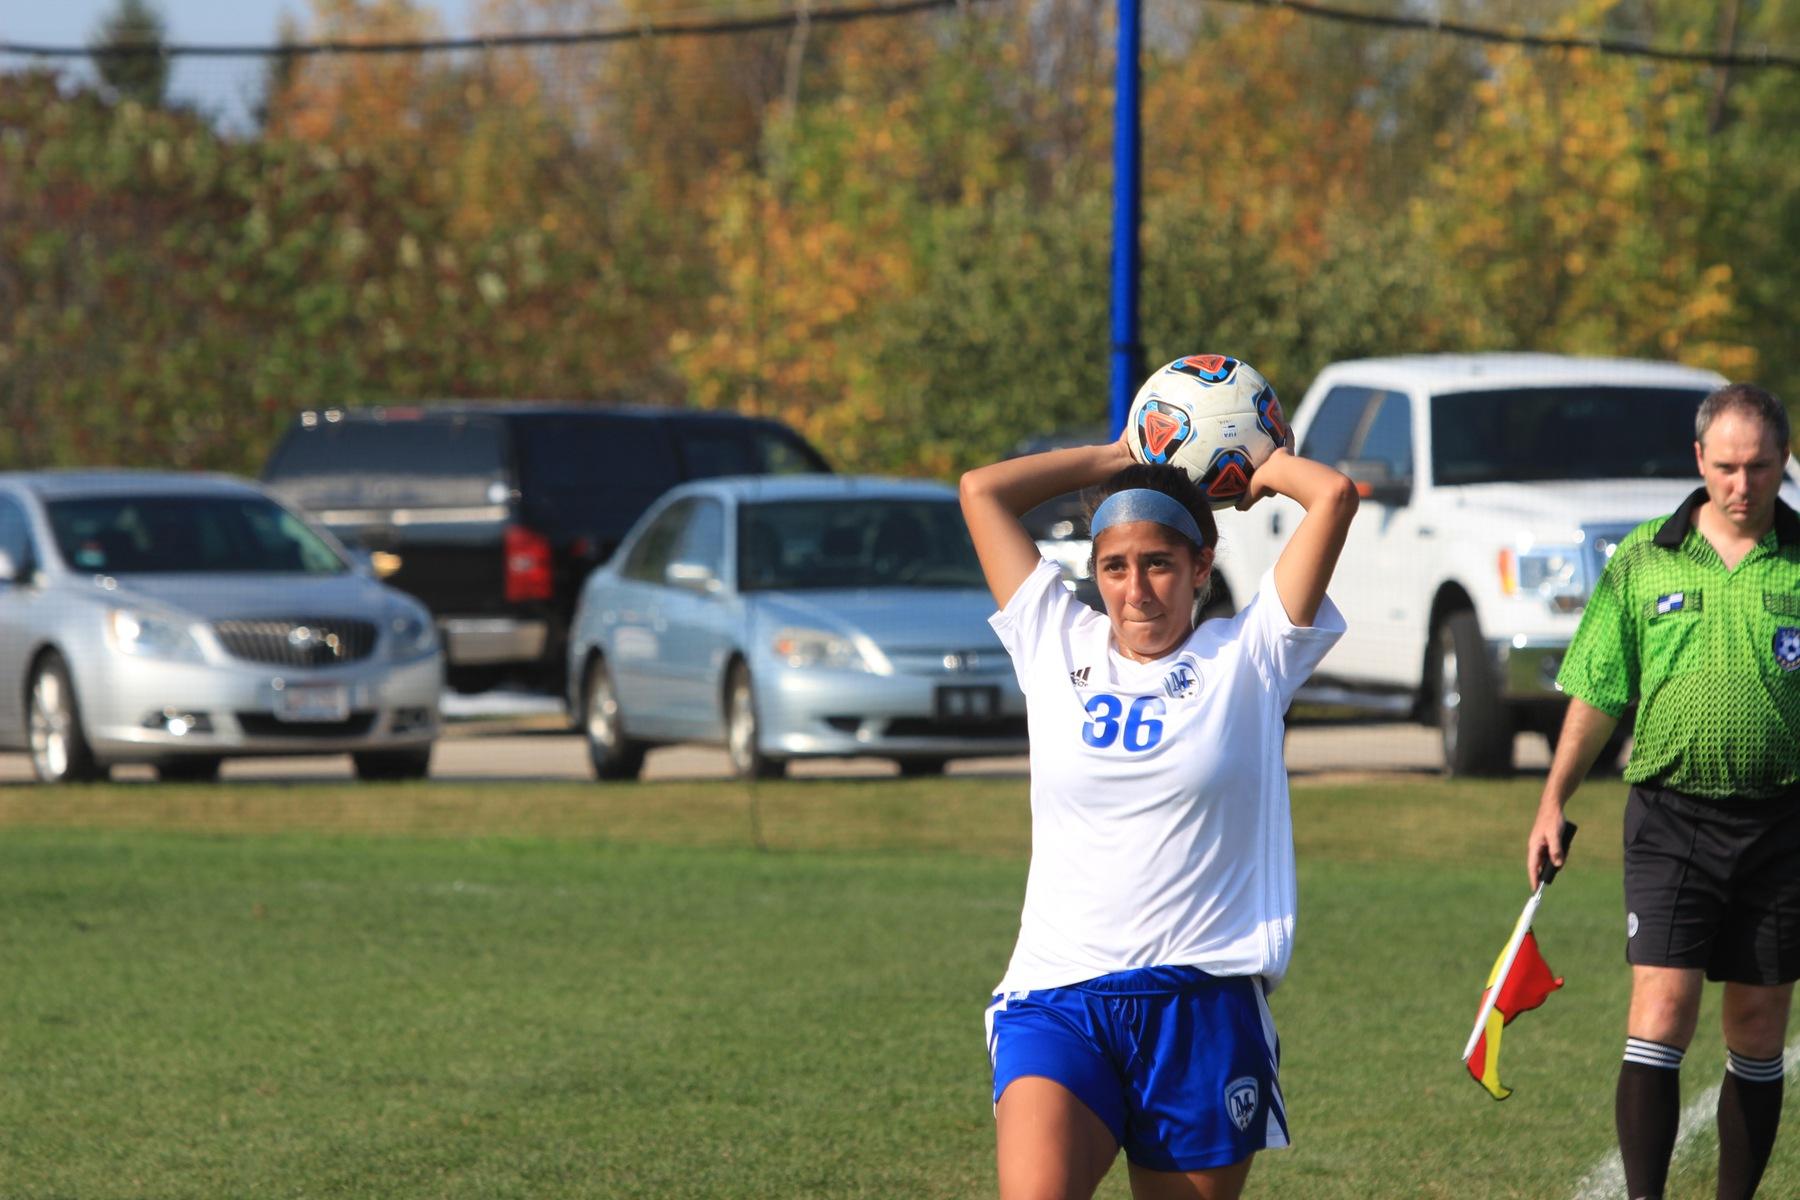 Valeria Orozco throws the ball in.